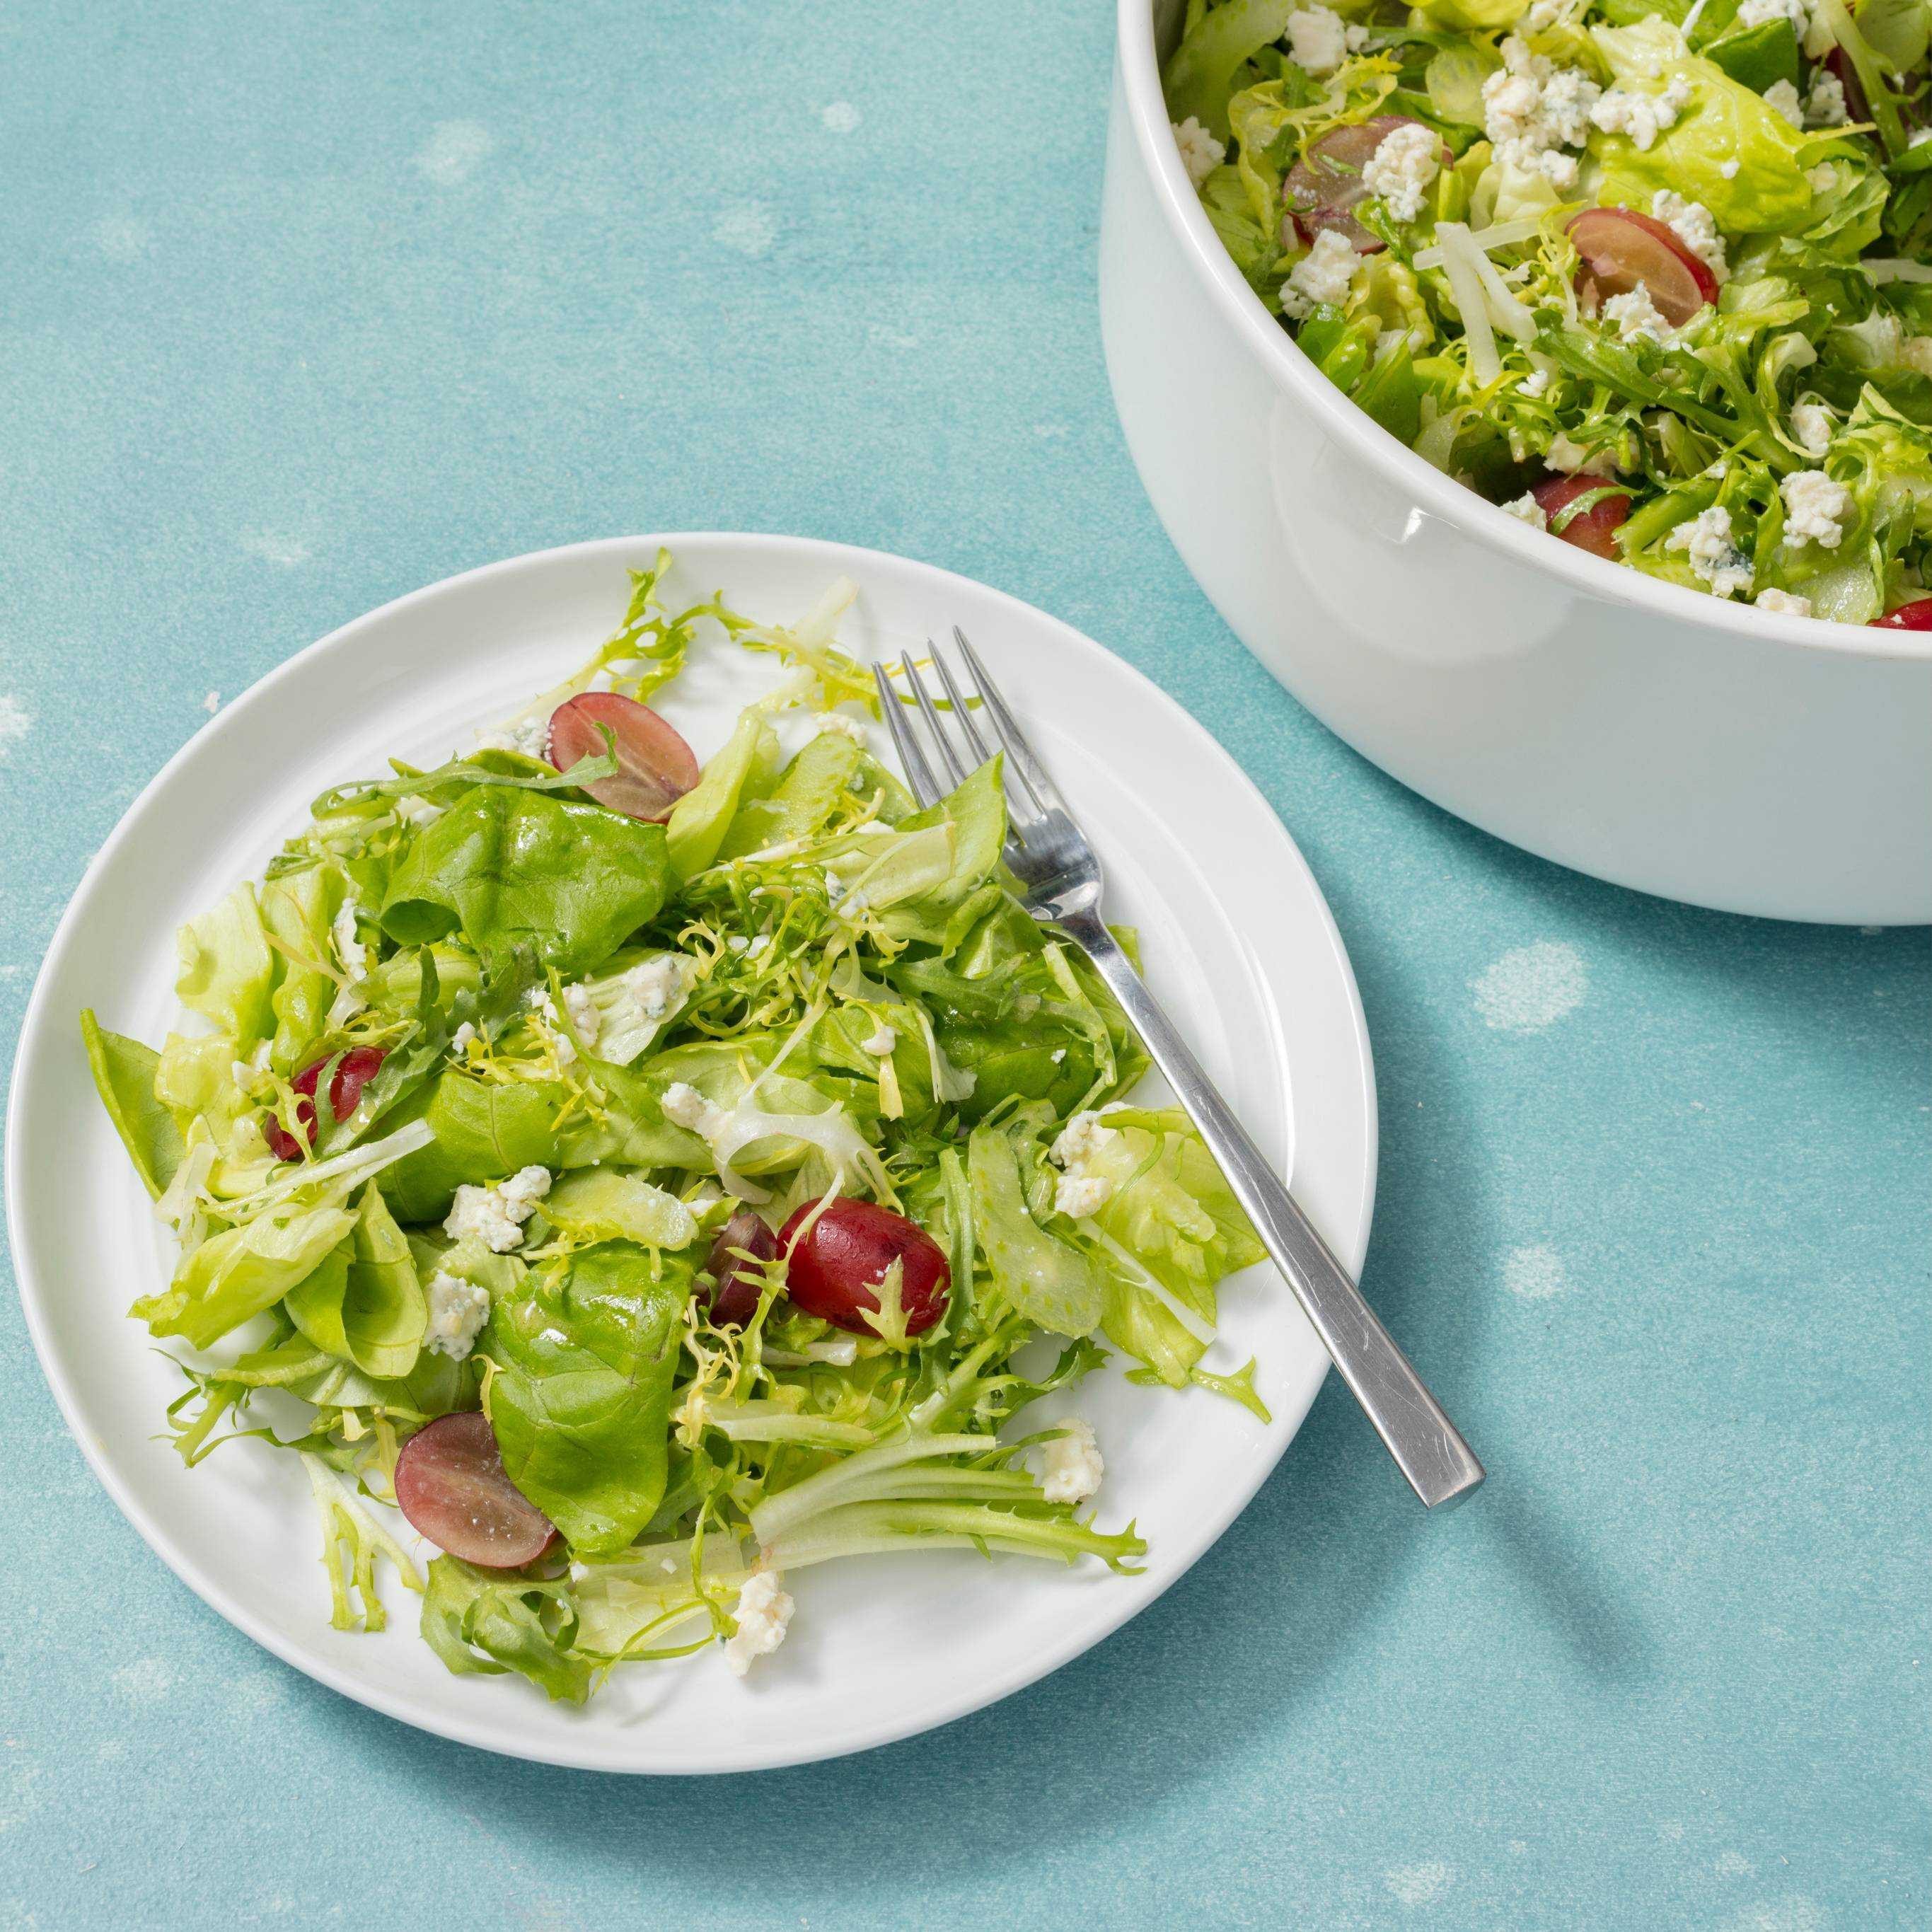 Bibb And Frisee Salad With Grapes And Celery